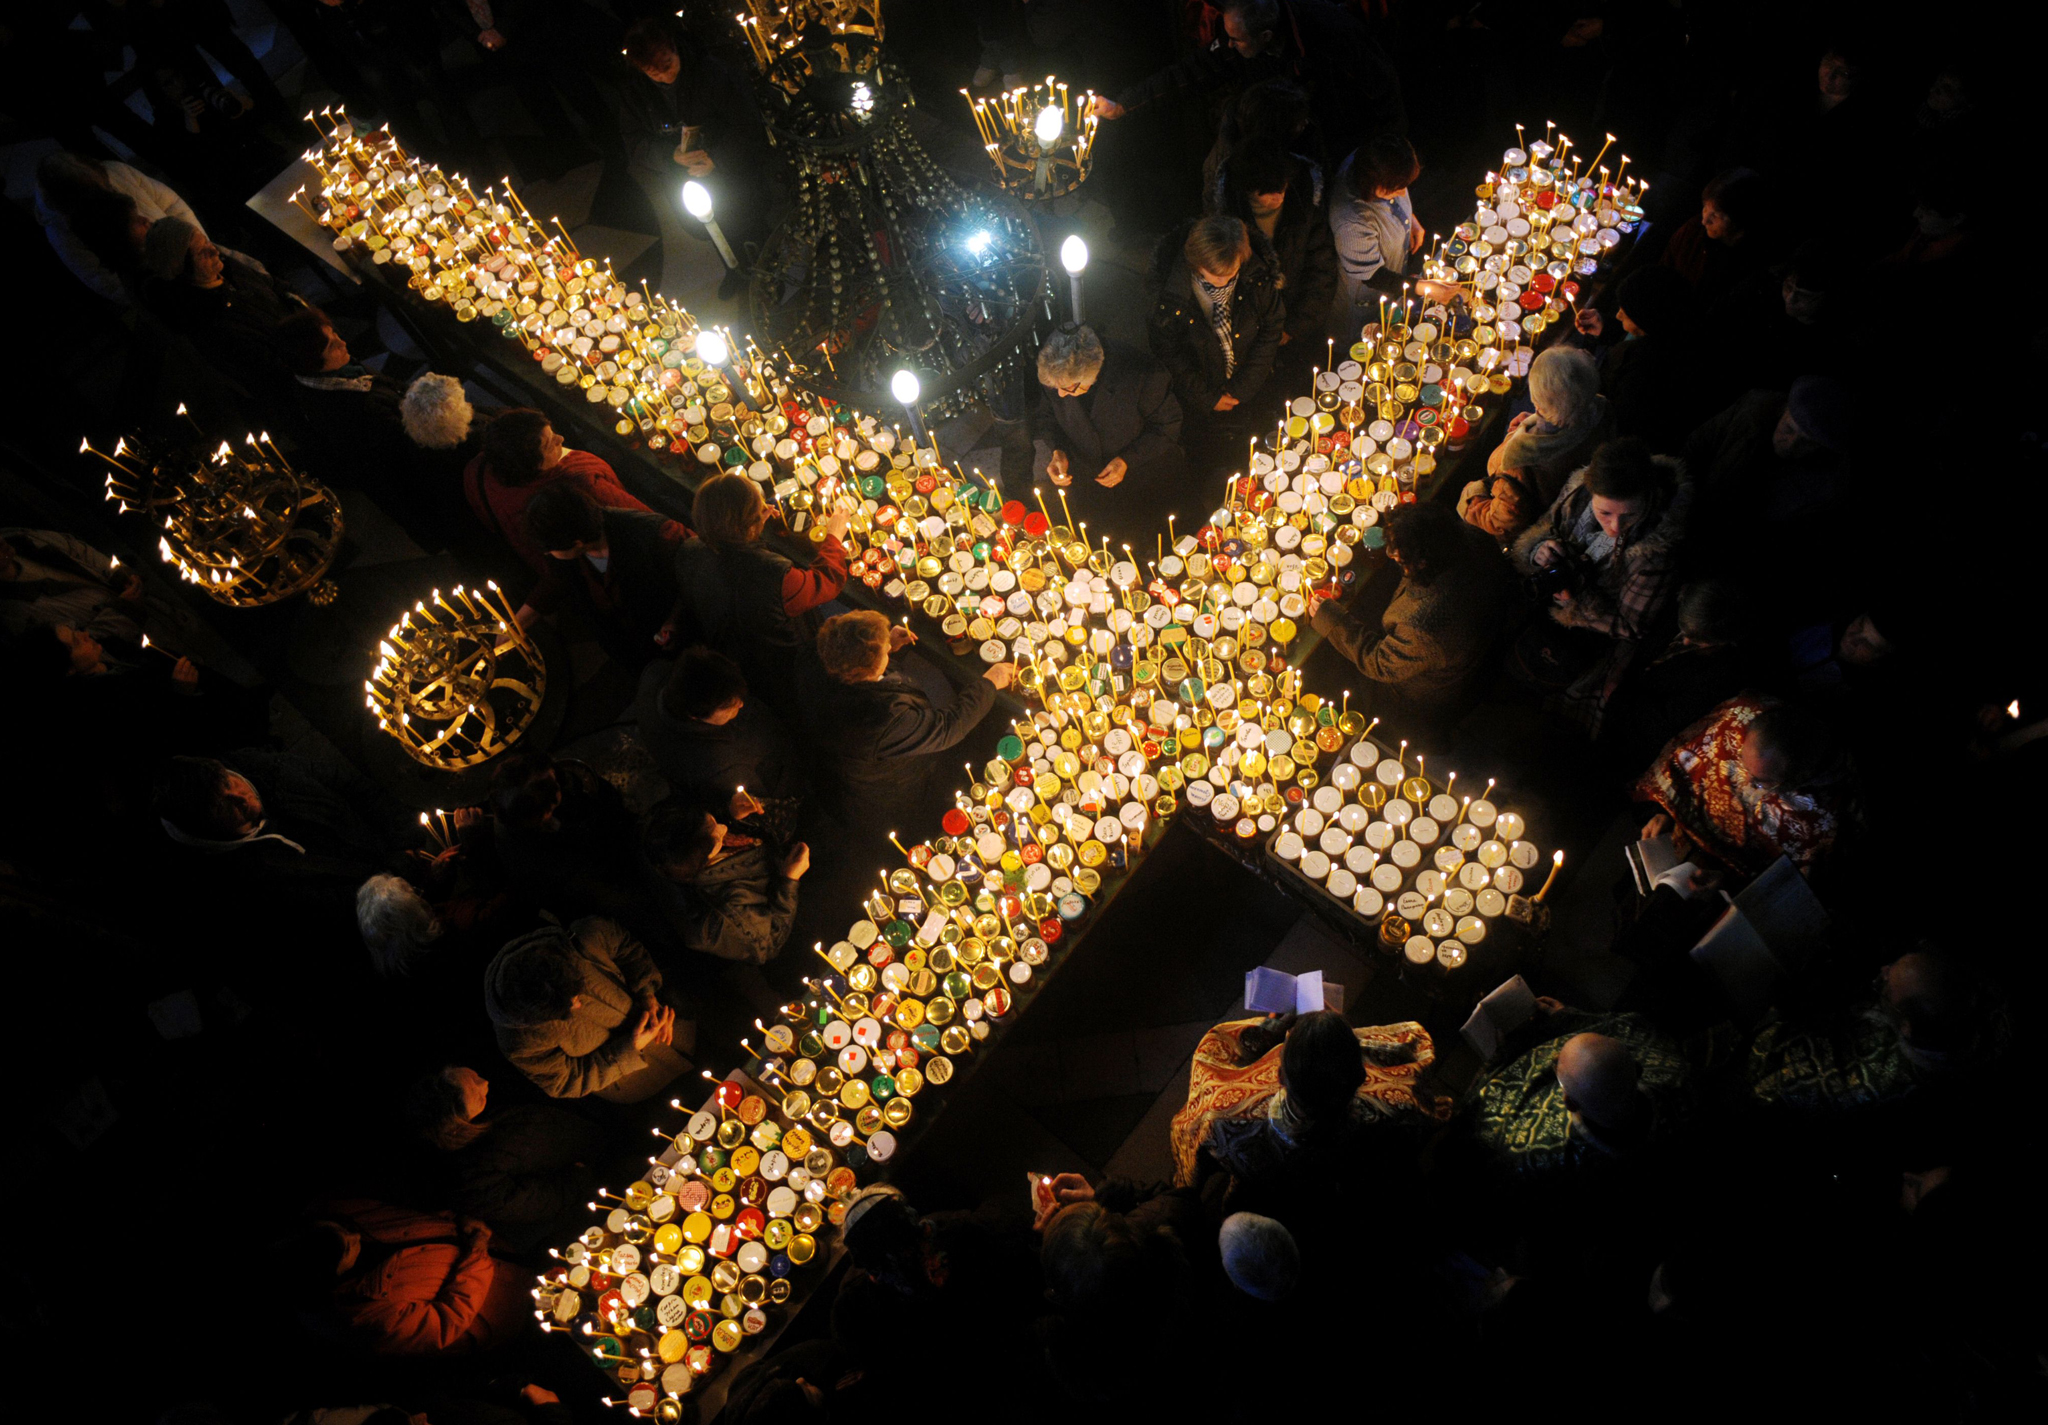 Believers pray around a cross-shaped platform covered with candles placed in jars of honey during a celebration in of St. Haralampi, protector of beekeepers, at the Church of the Blessed Virgin in Blagoevgrad, eastern Bulgaria